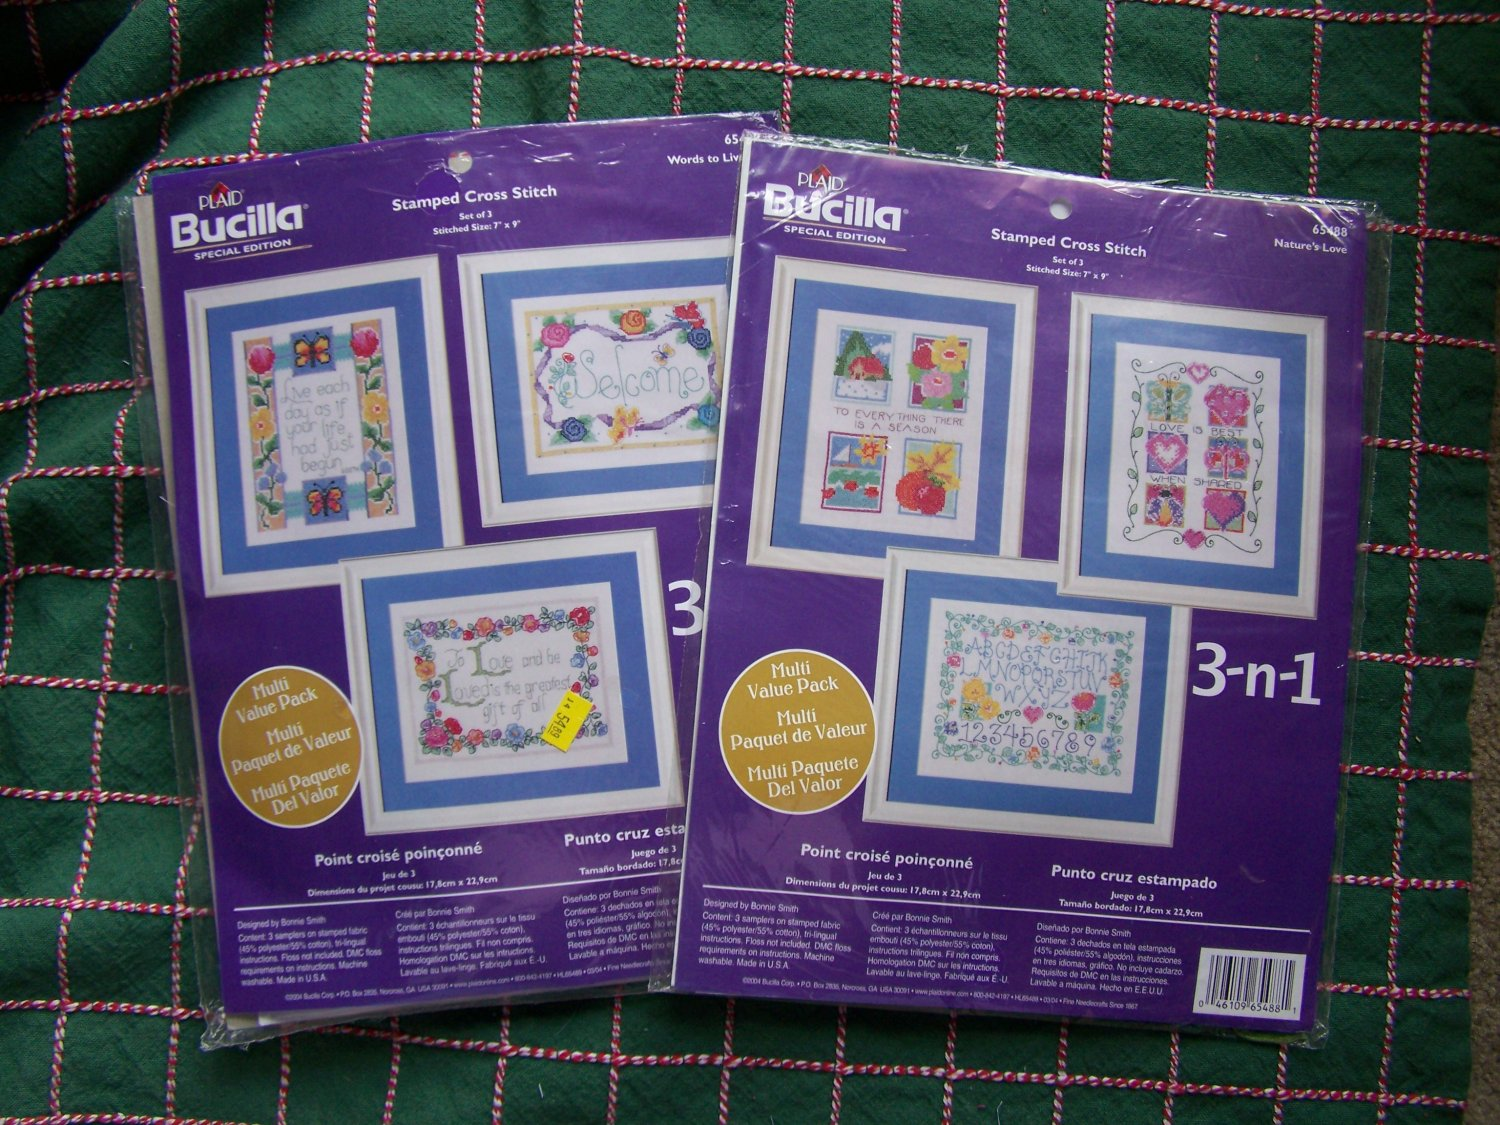 2 Bucilla 3 in 1 Special Edition Stamped Cross Stitch Kits Words to Live By & Nature's Love